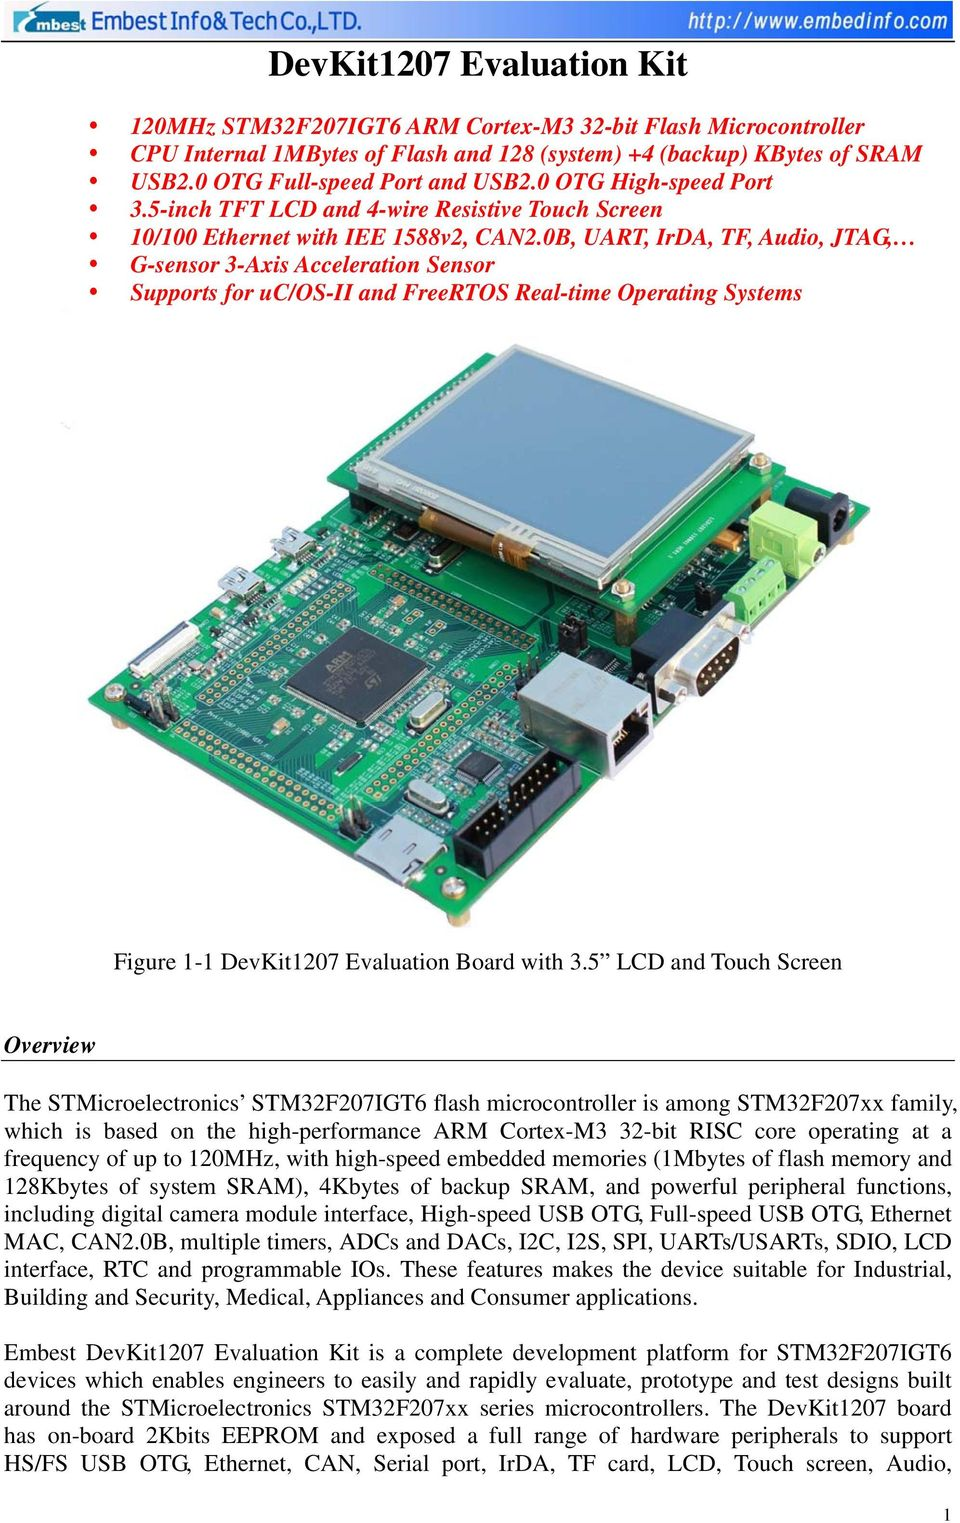 0B, UART, IrDA, TF, Audio, JTAG, G-sensor 3-Axis Acceleration Sensor Supports for uc/os-ii and FreeRTOS Real-time Operating Systems Figure 1-1 DevKit1207 Evaluation Board with 3.